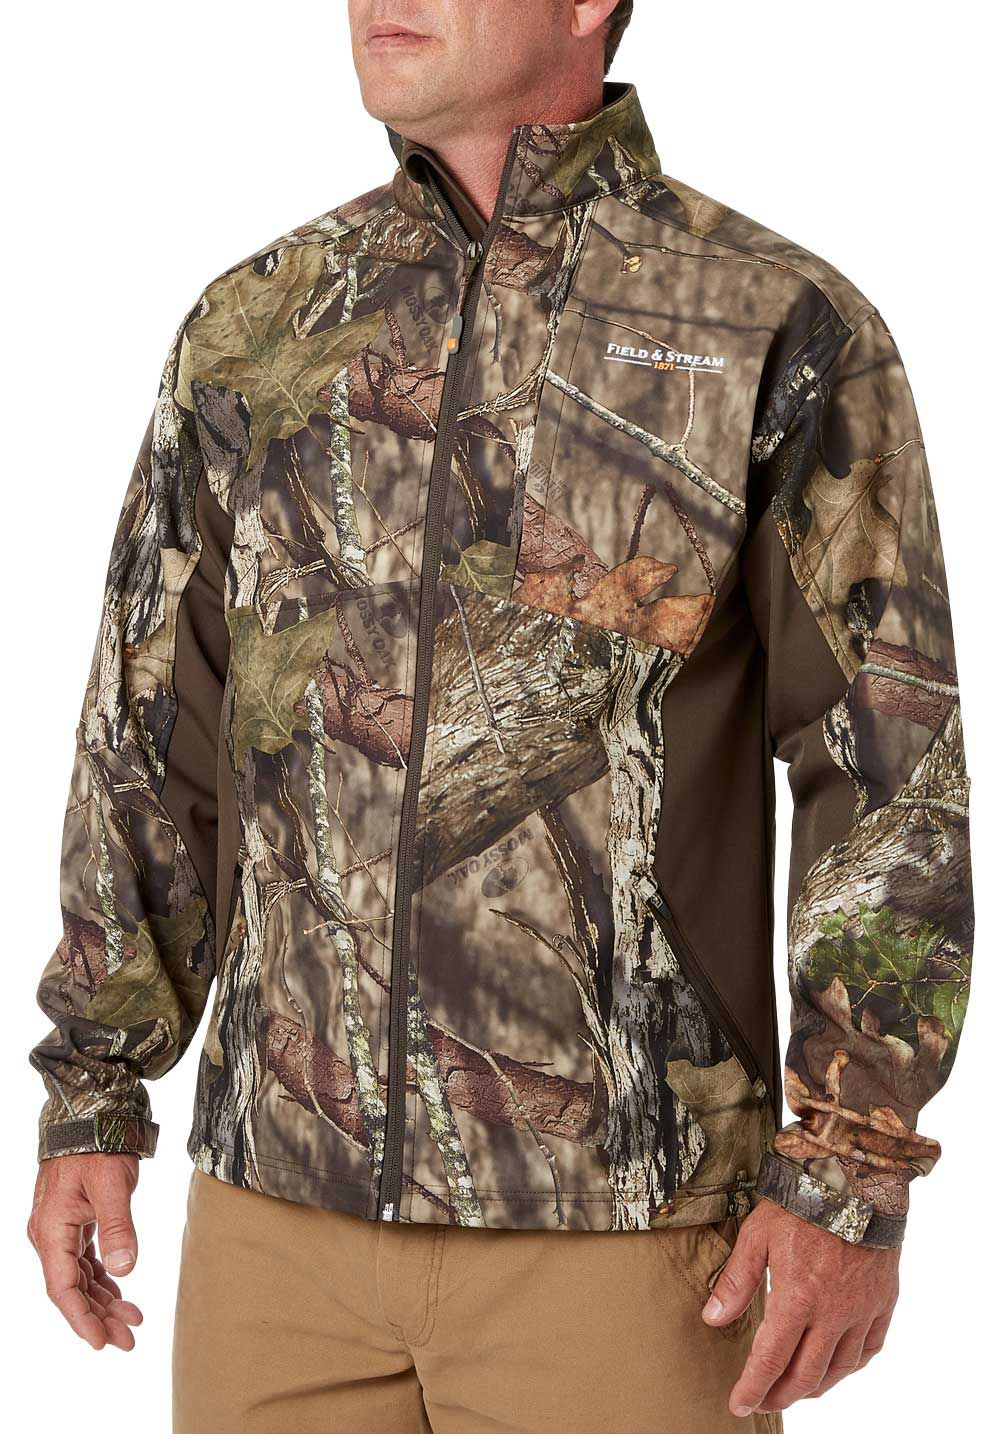 Field & Stream Men's Soft-Shell Hunting Jacket, Size: 3XL, Mossy Oak Brk-Up Country thumbnail